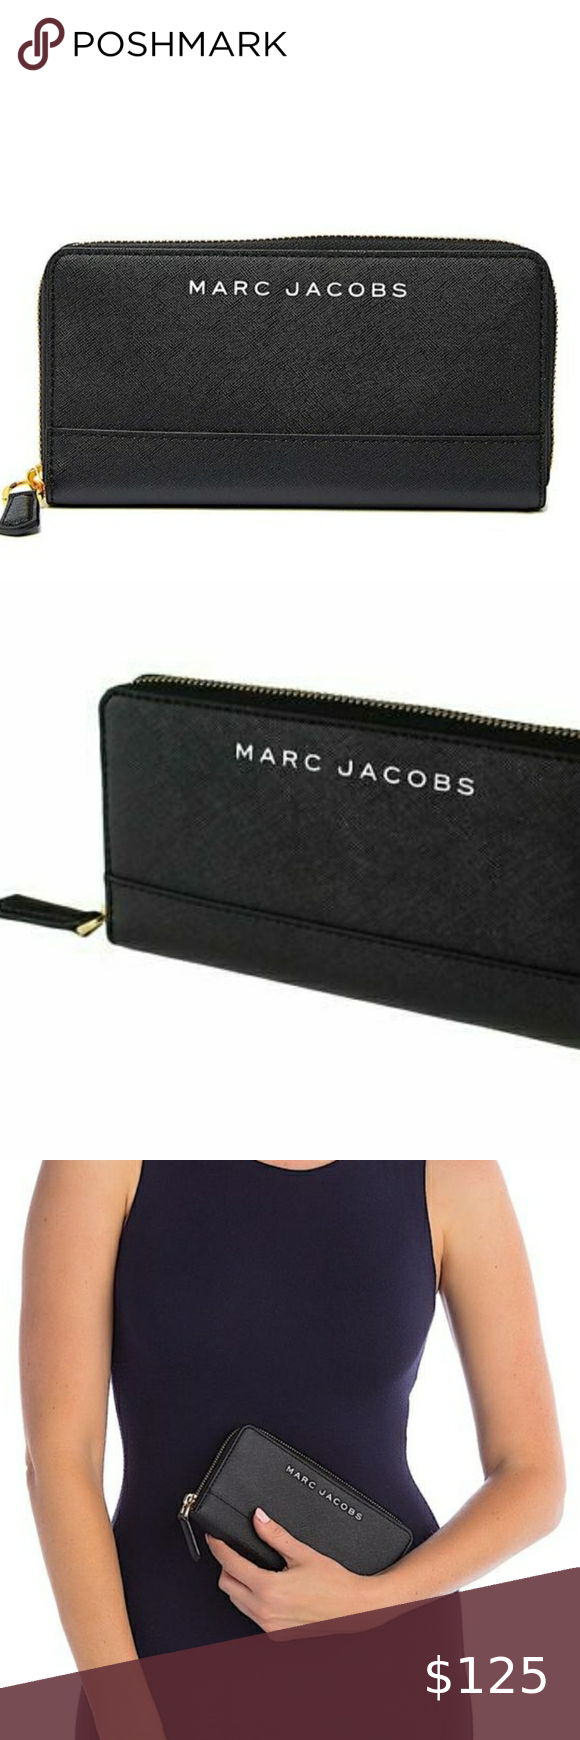 Marc Jacob S Branded Saffiano Continental Wallet Marc Jacobs Logo Marc Jacobs Marc Jacobs Bag